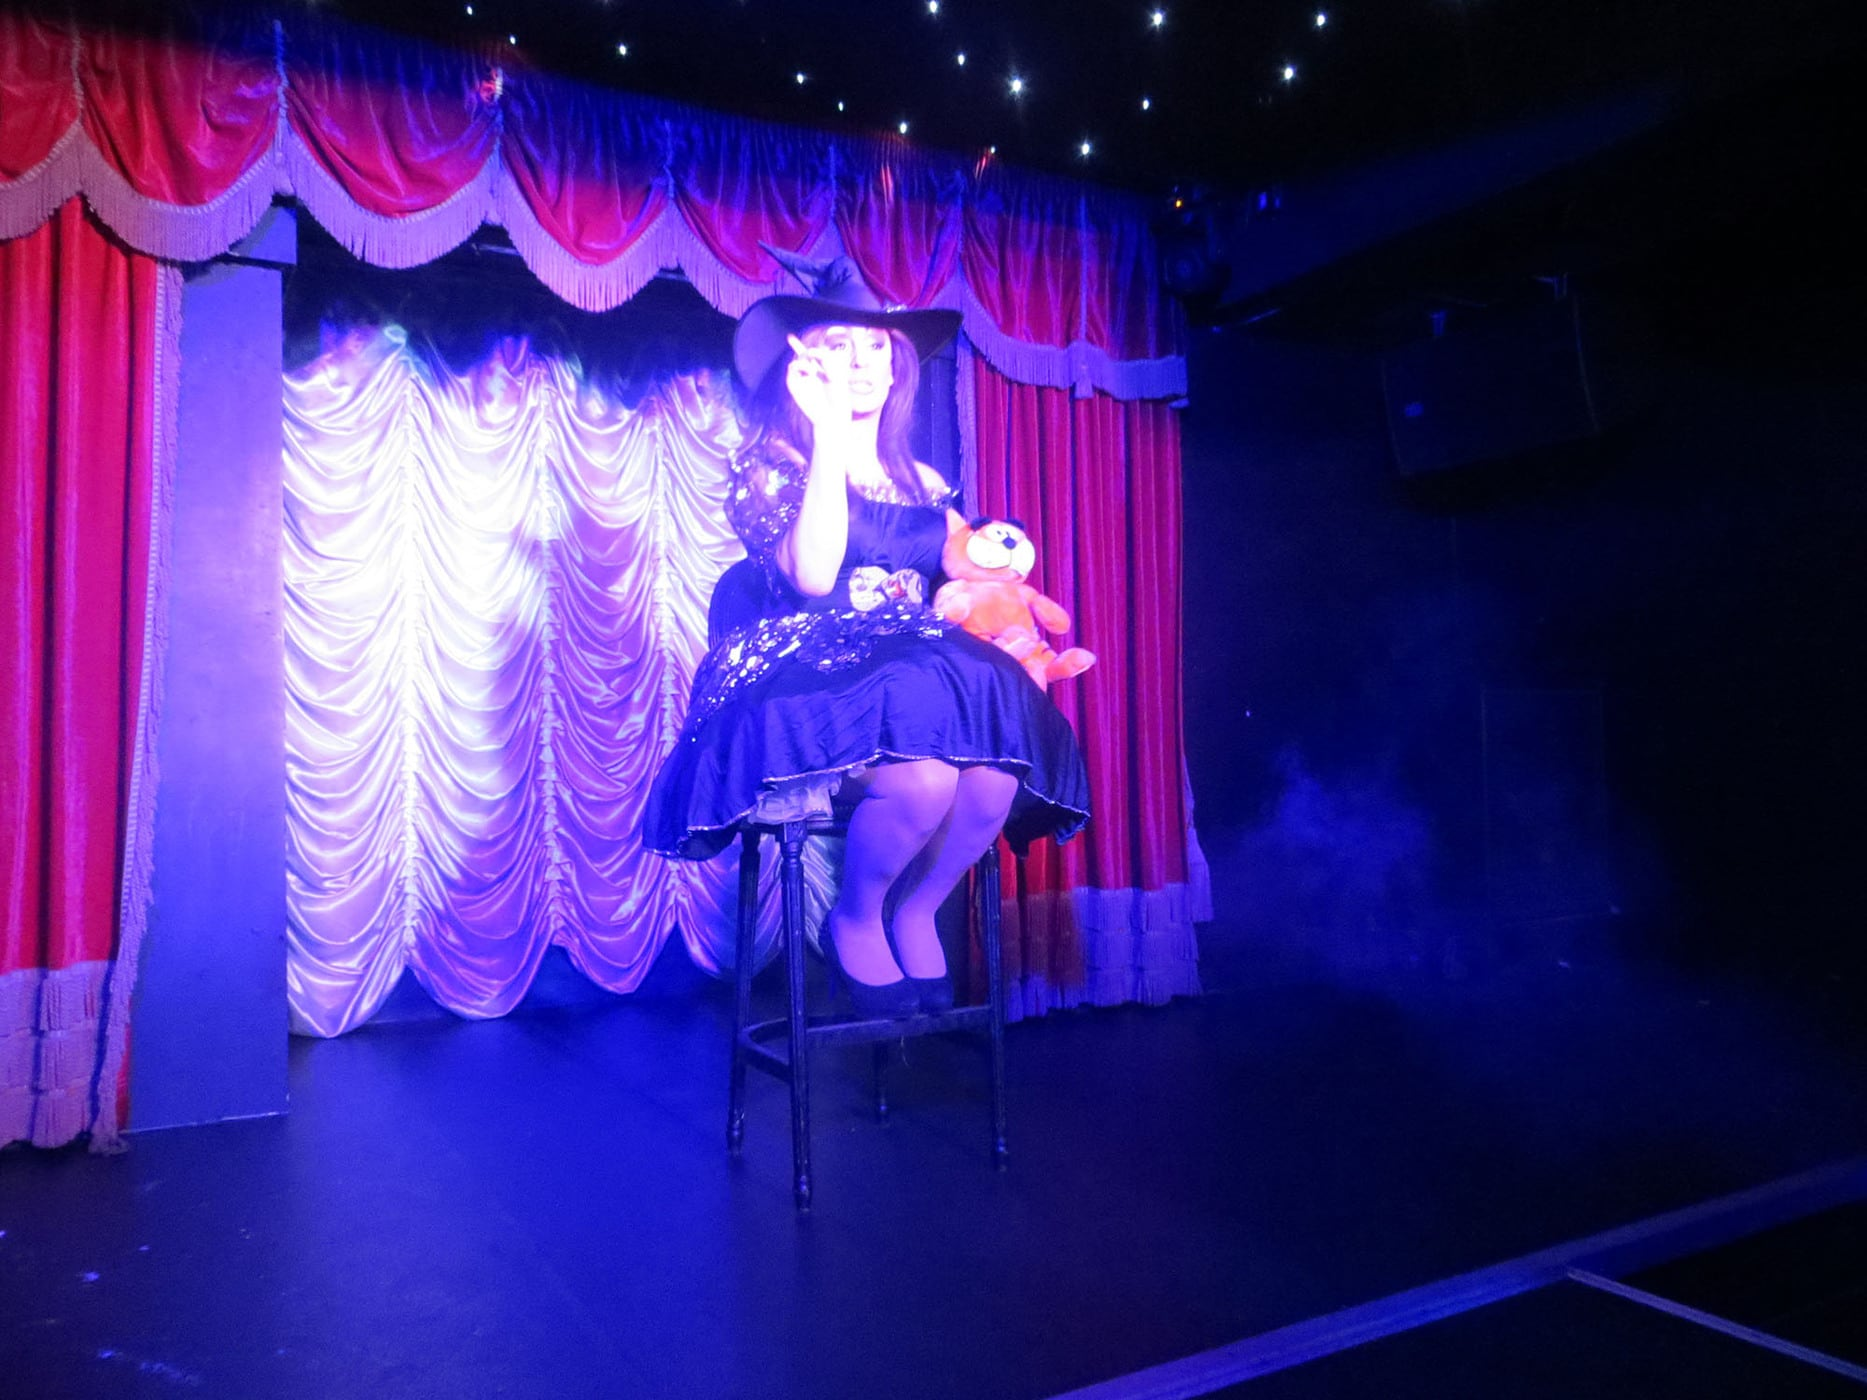 Drag queen performing in Leeds, England.